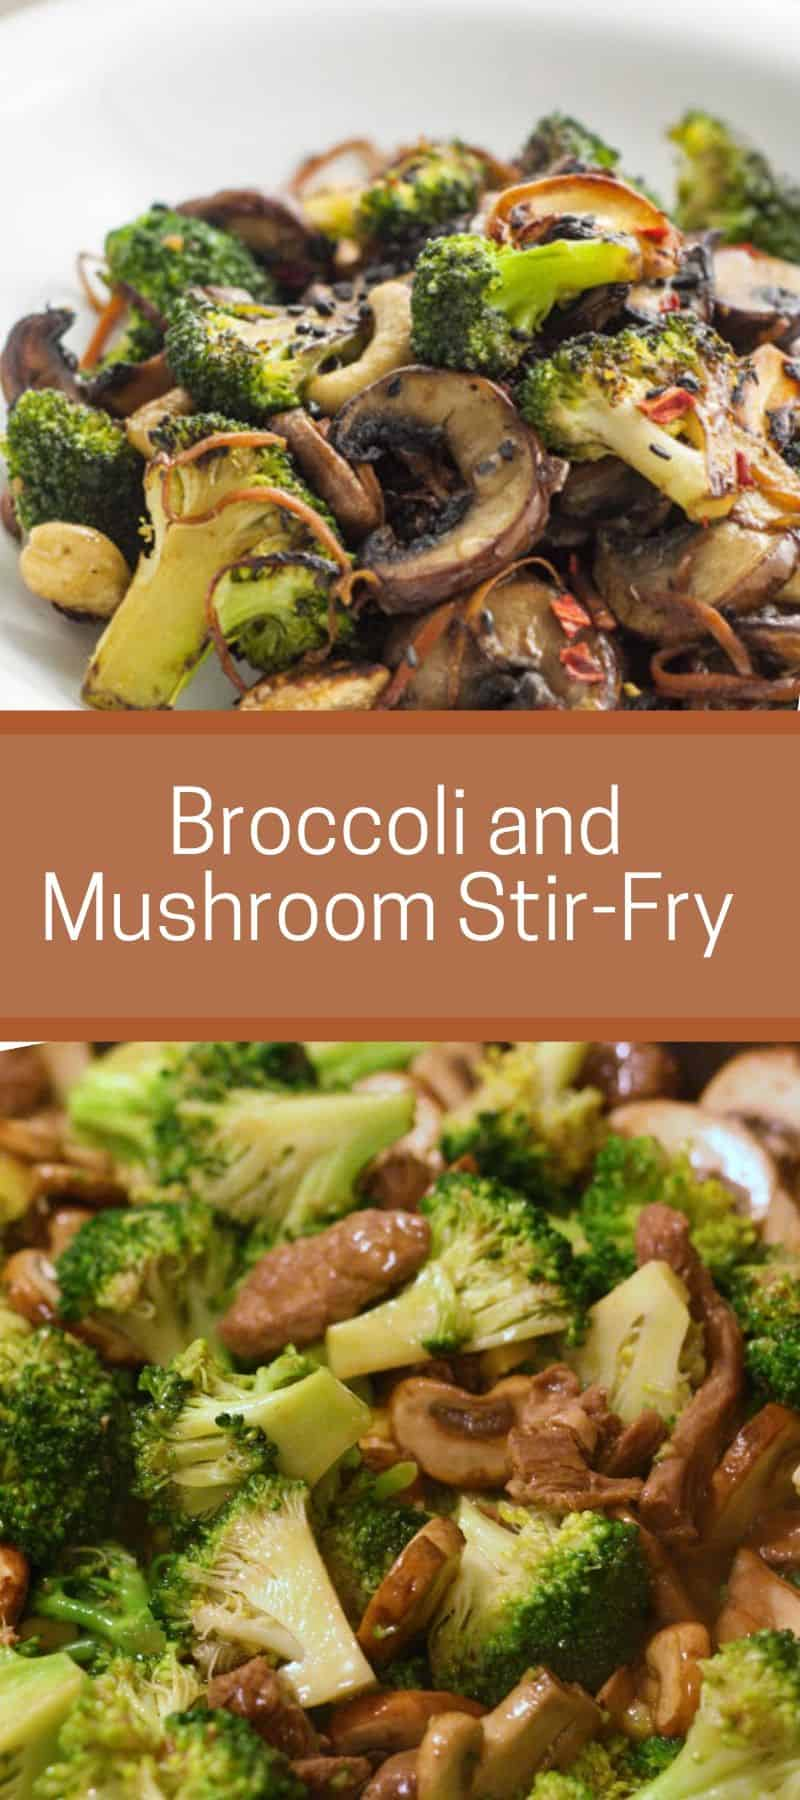 Broccoli and Mushroom Stir-Fry Recipe 3